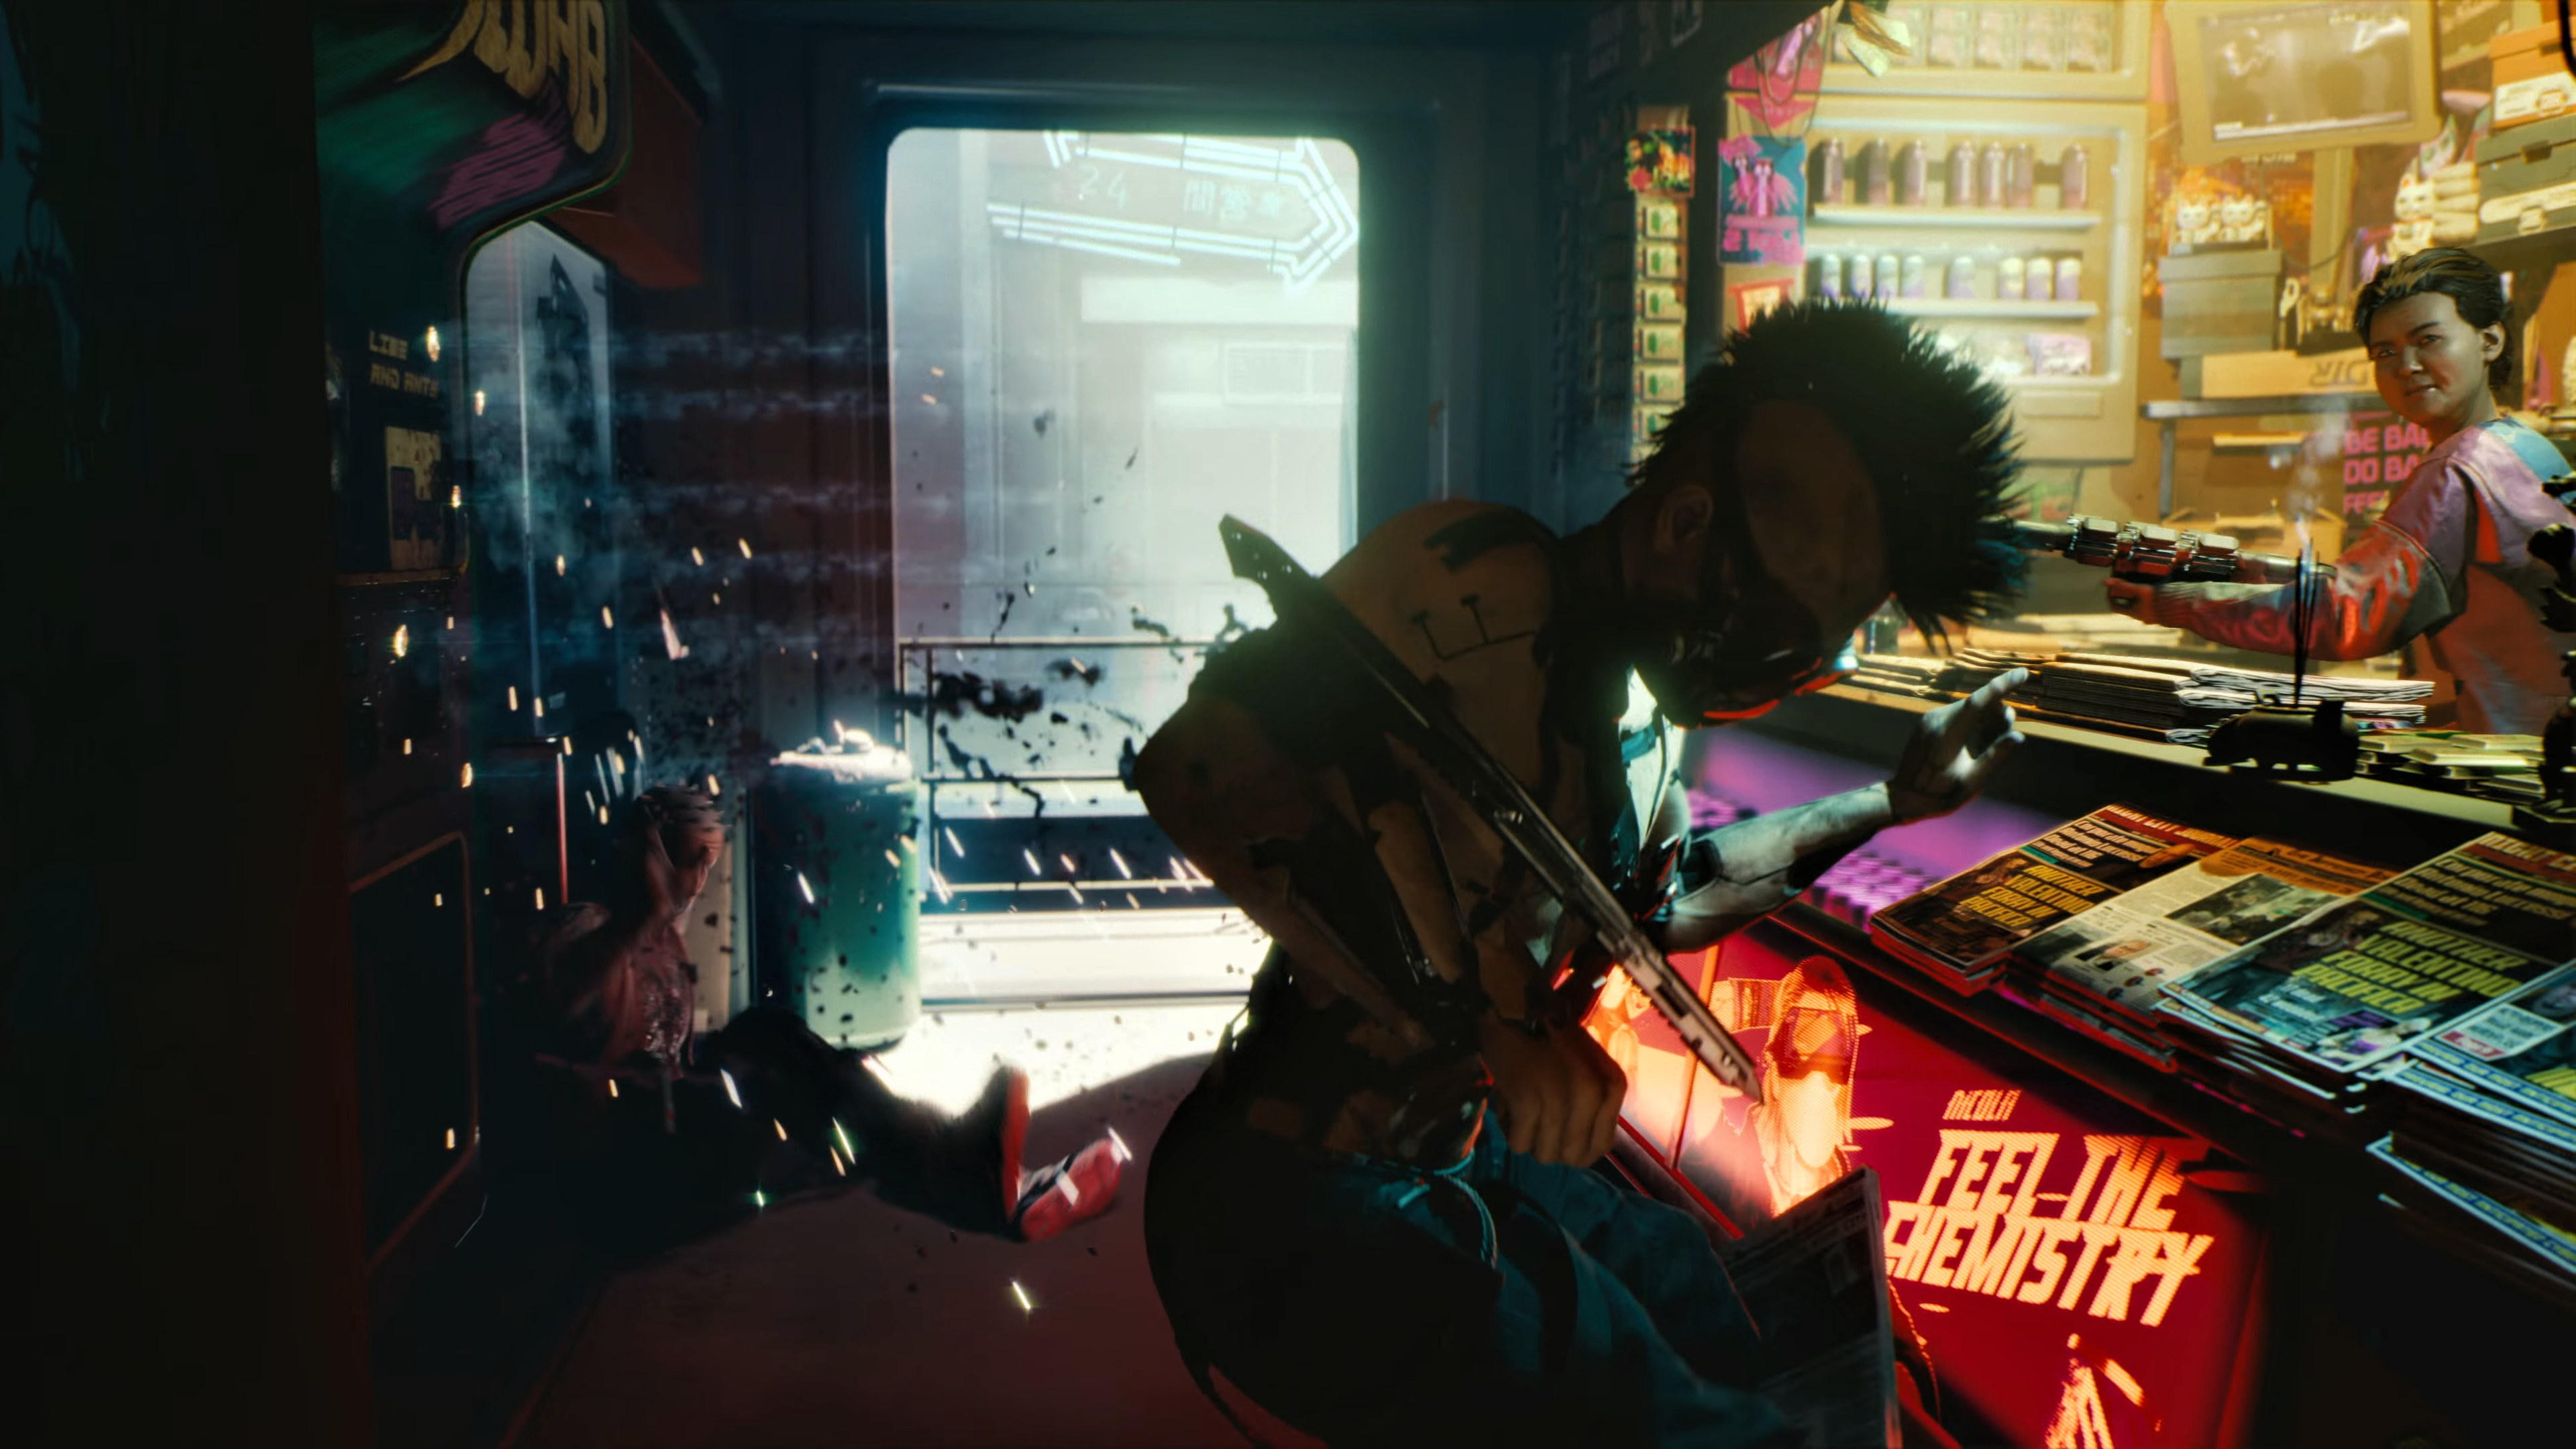 Cyberpunk 2077 4k Ultra Hd Wallpaper Background Image 3840x2160 Id 927303 Wallpaper Abyss